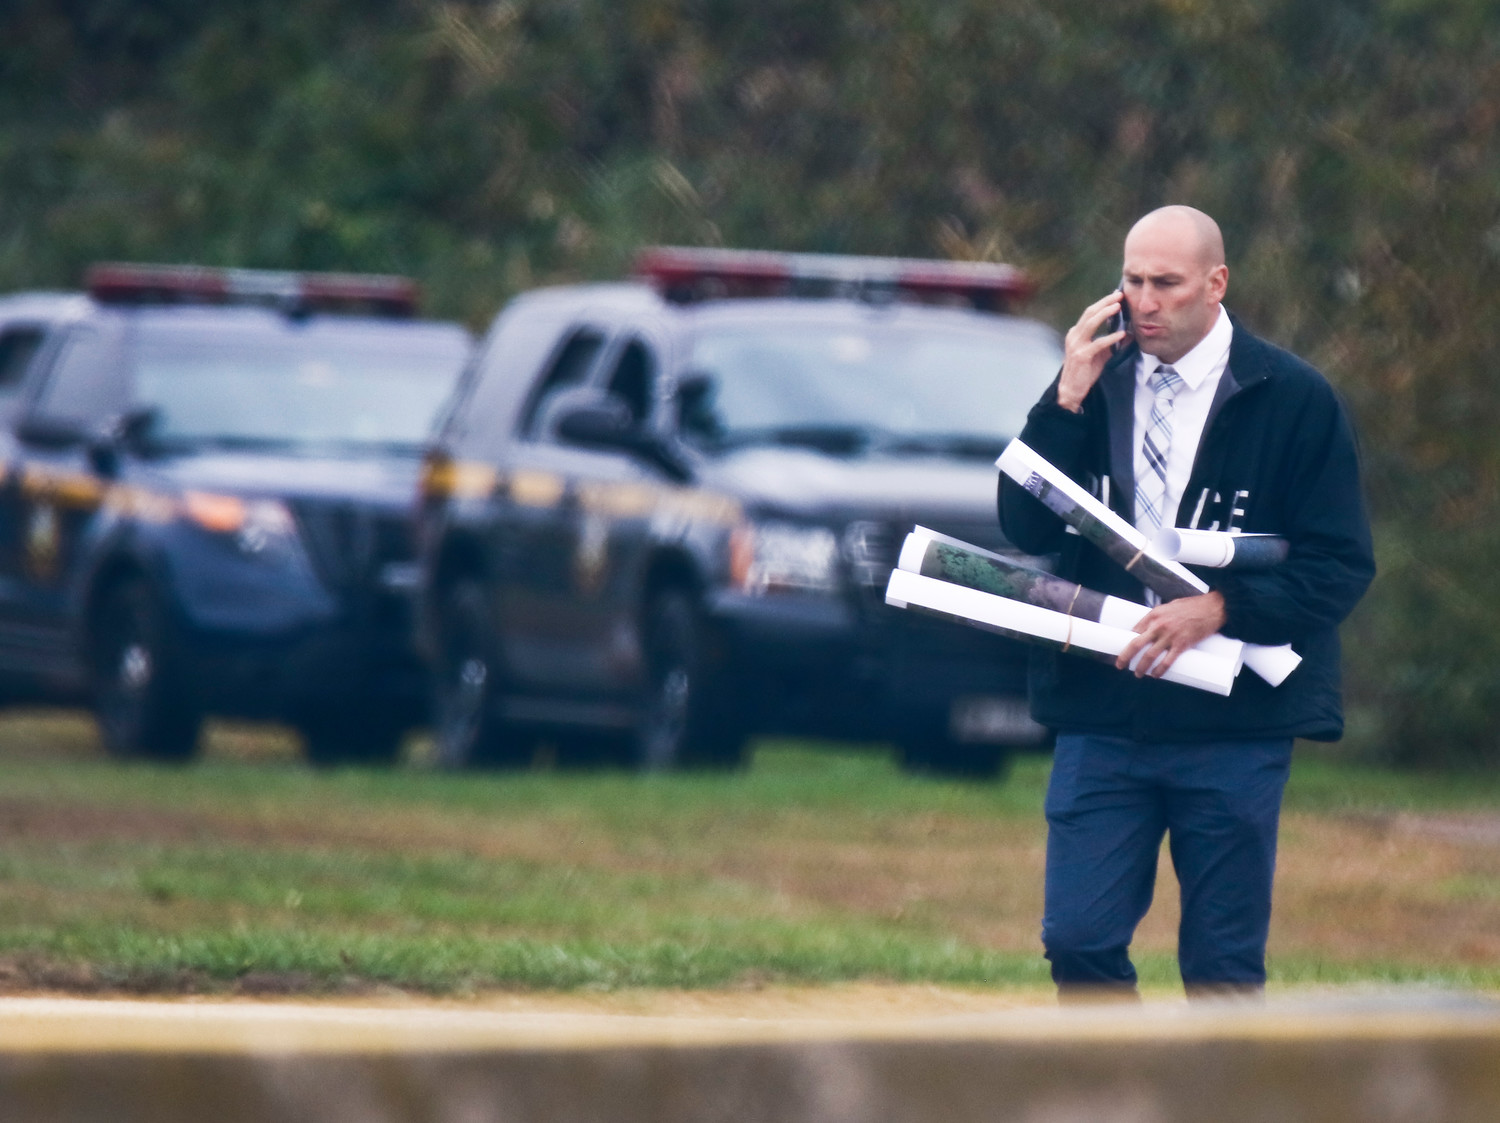 Agents on the scene used an assortment of maps to search the area.